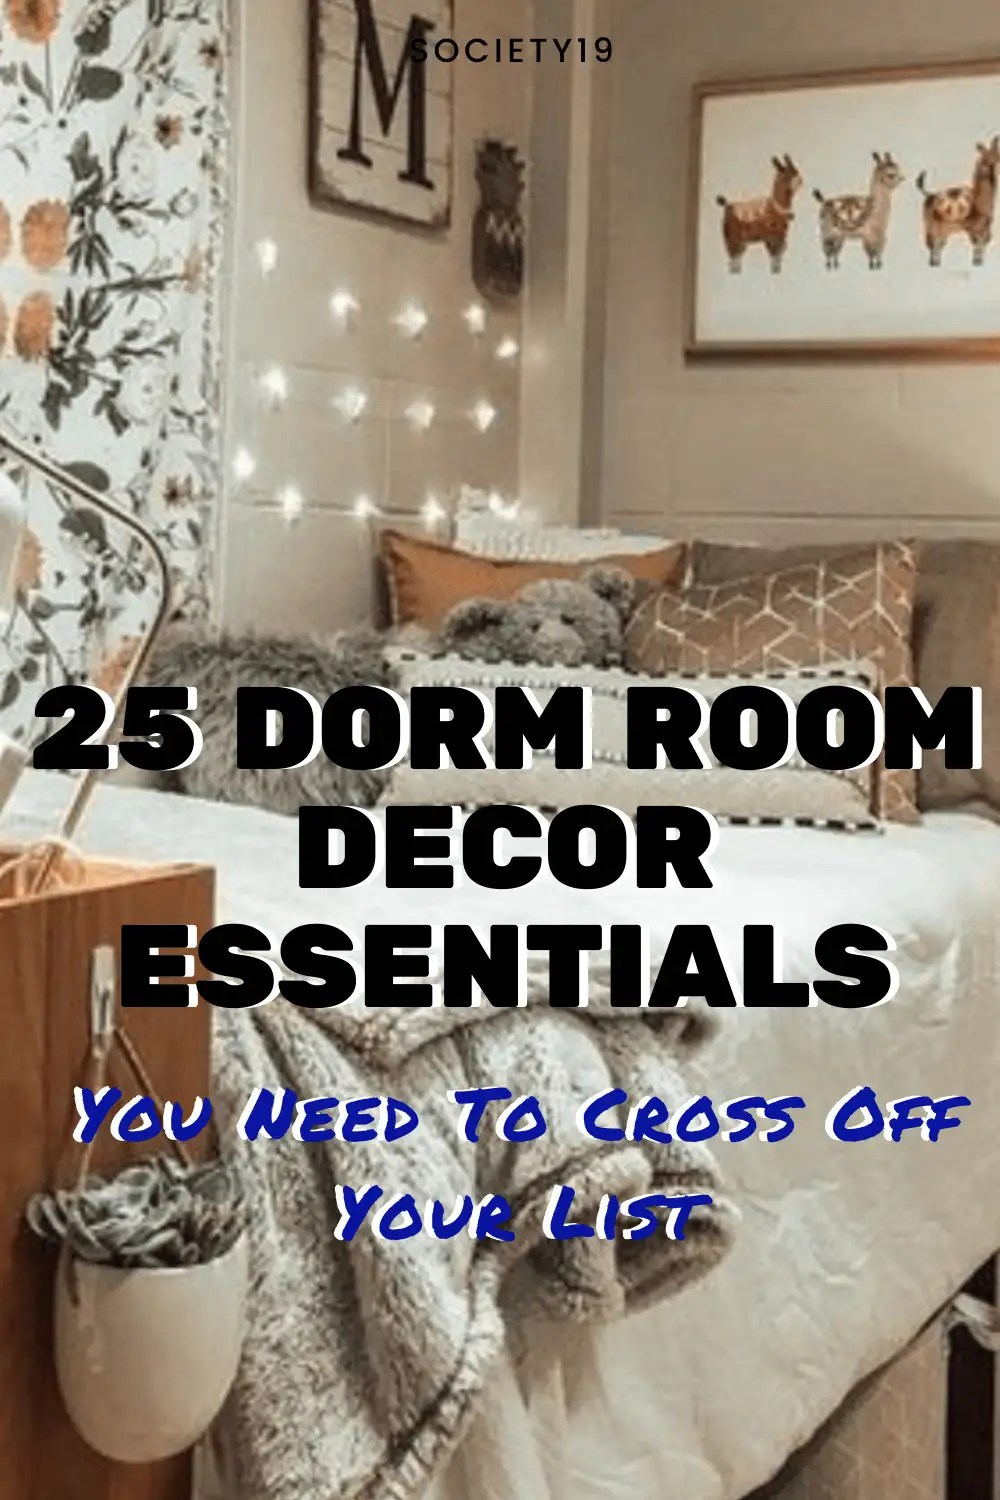 25 Dorm Room Decor Essentials You Need To Cross Off Your List